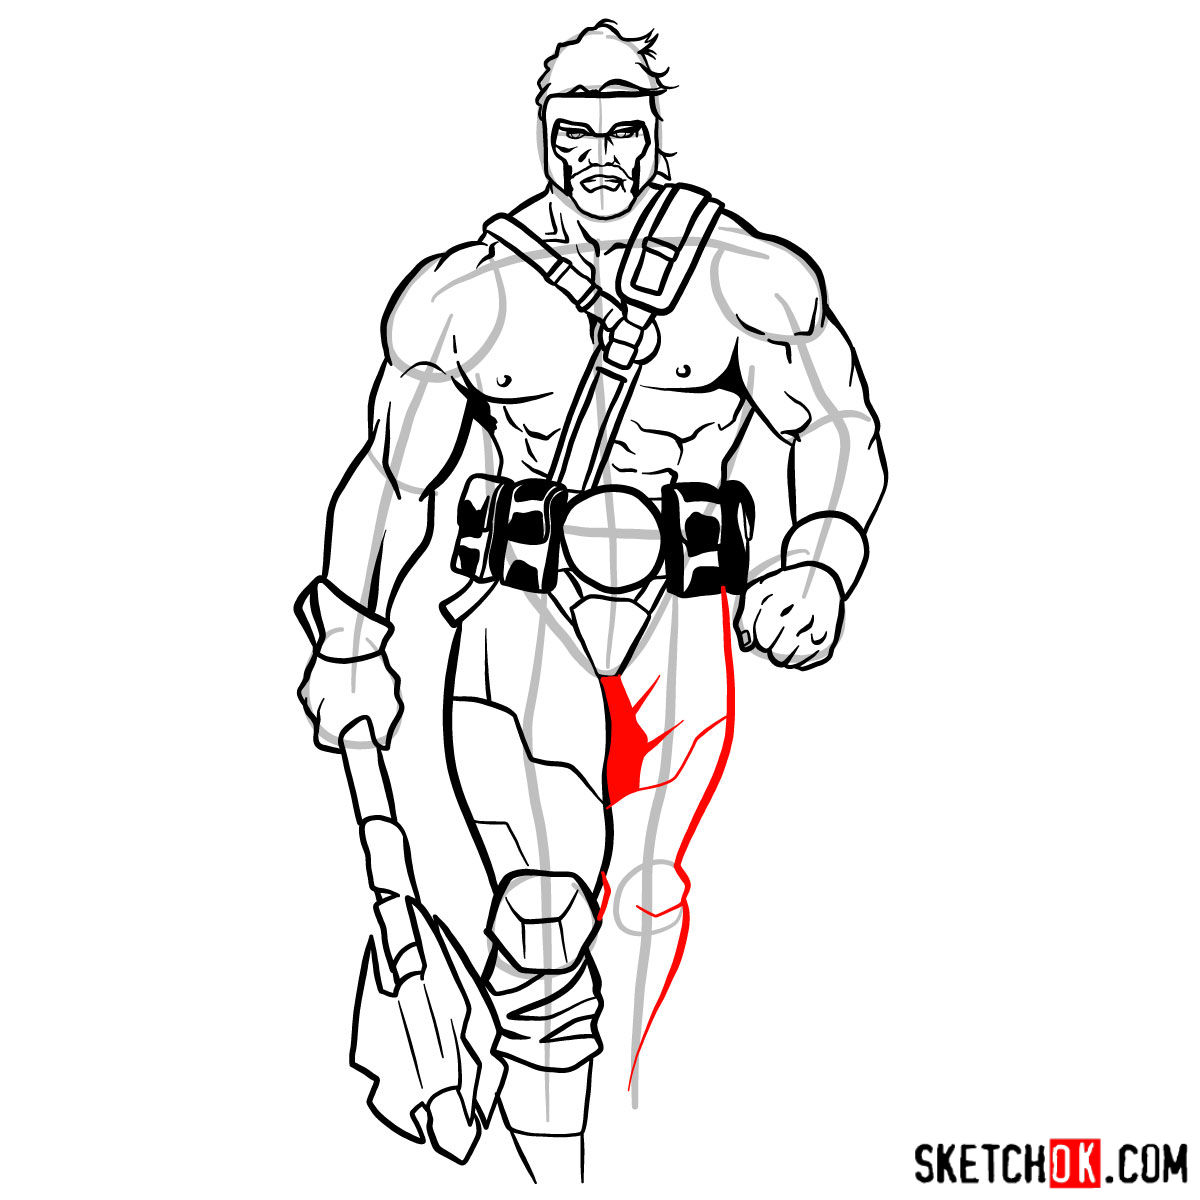 How to draw Hercules - Marvel Comics hero - step 13